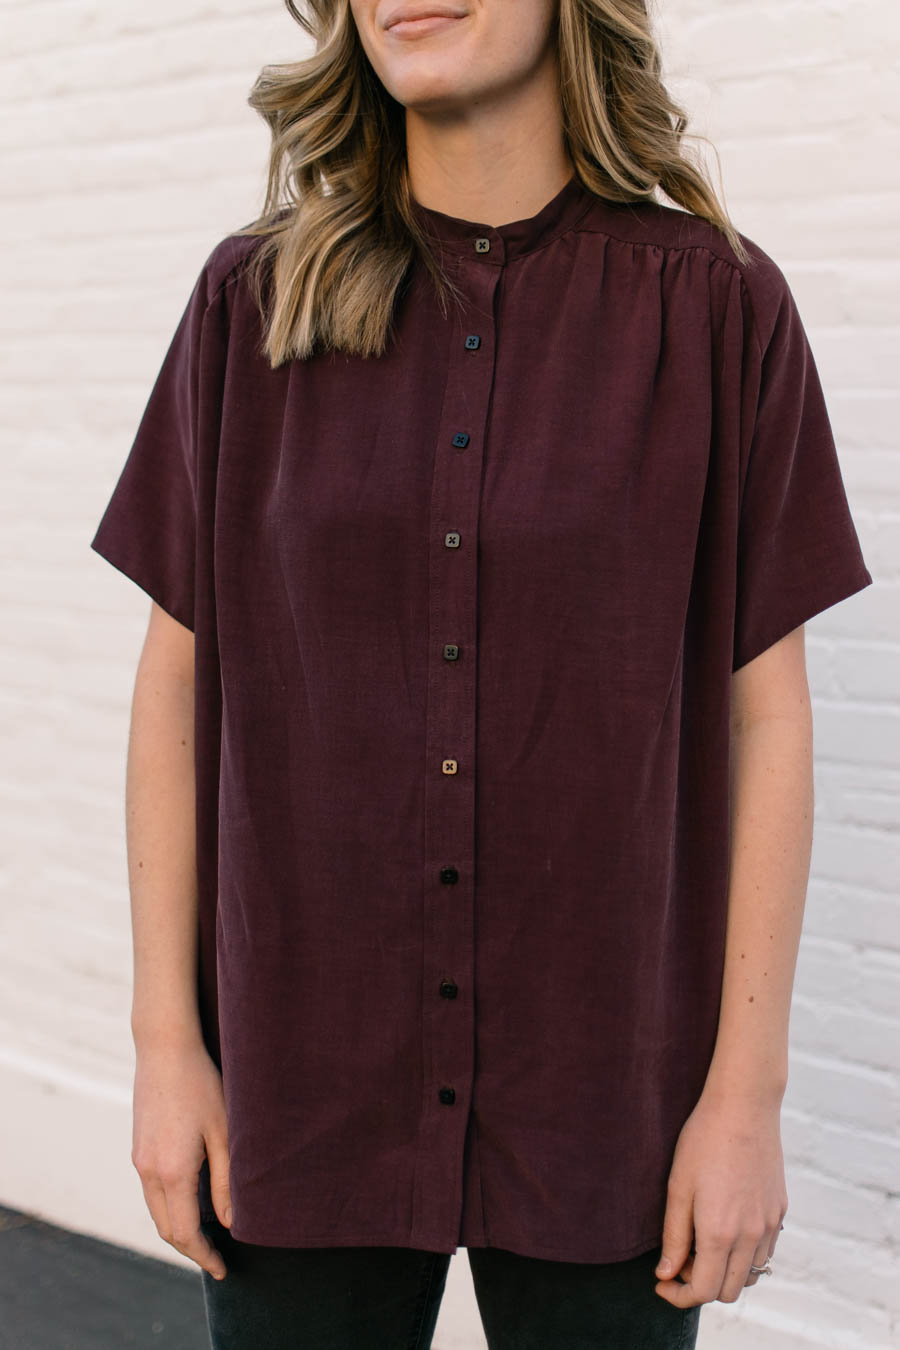 Perkins Shirt by Ensemble Patterns